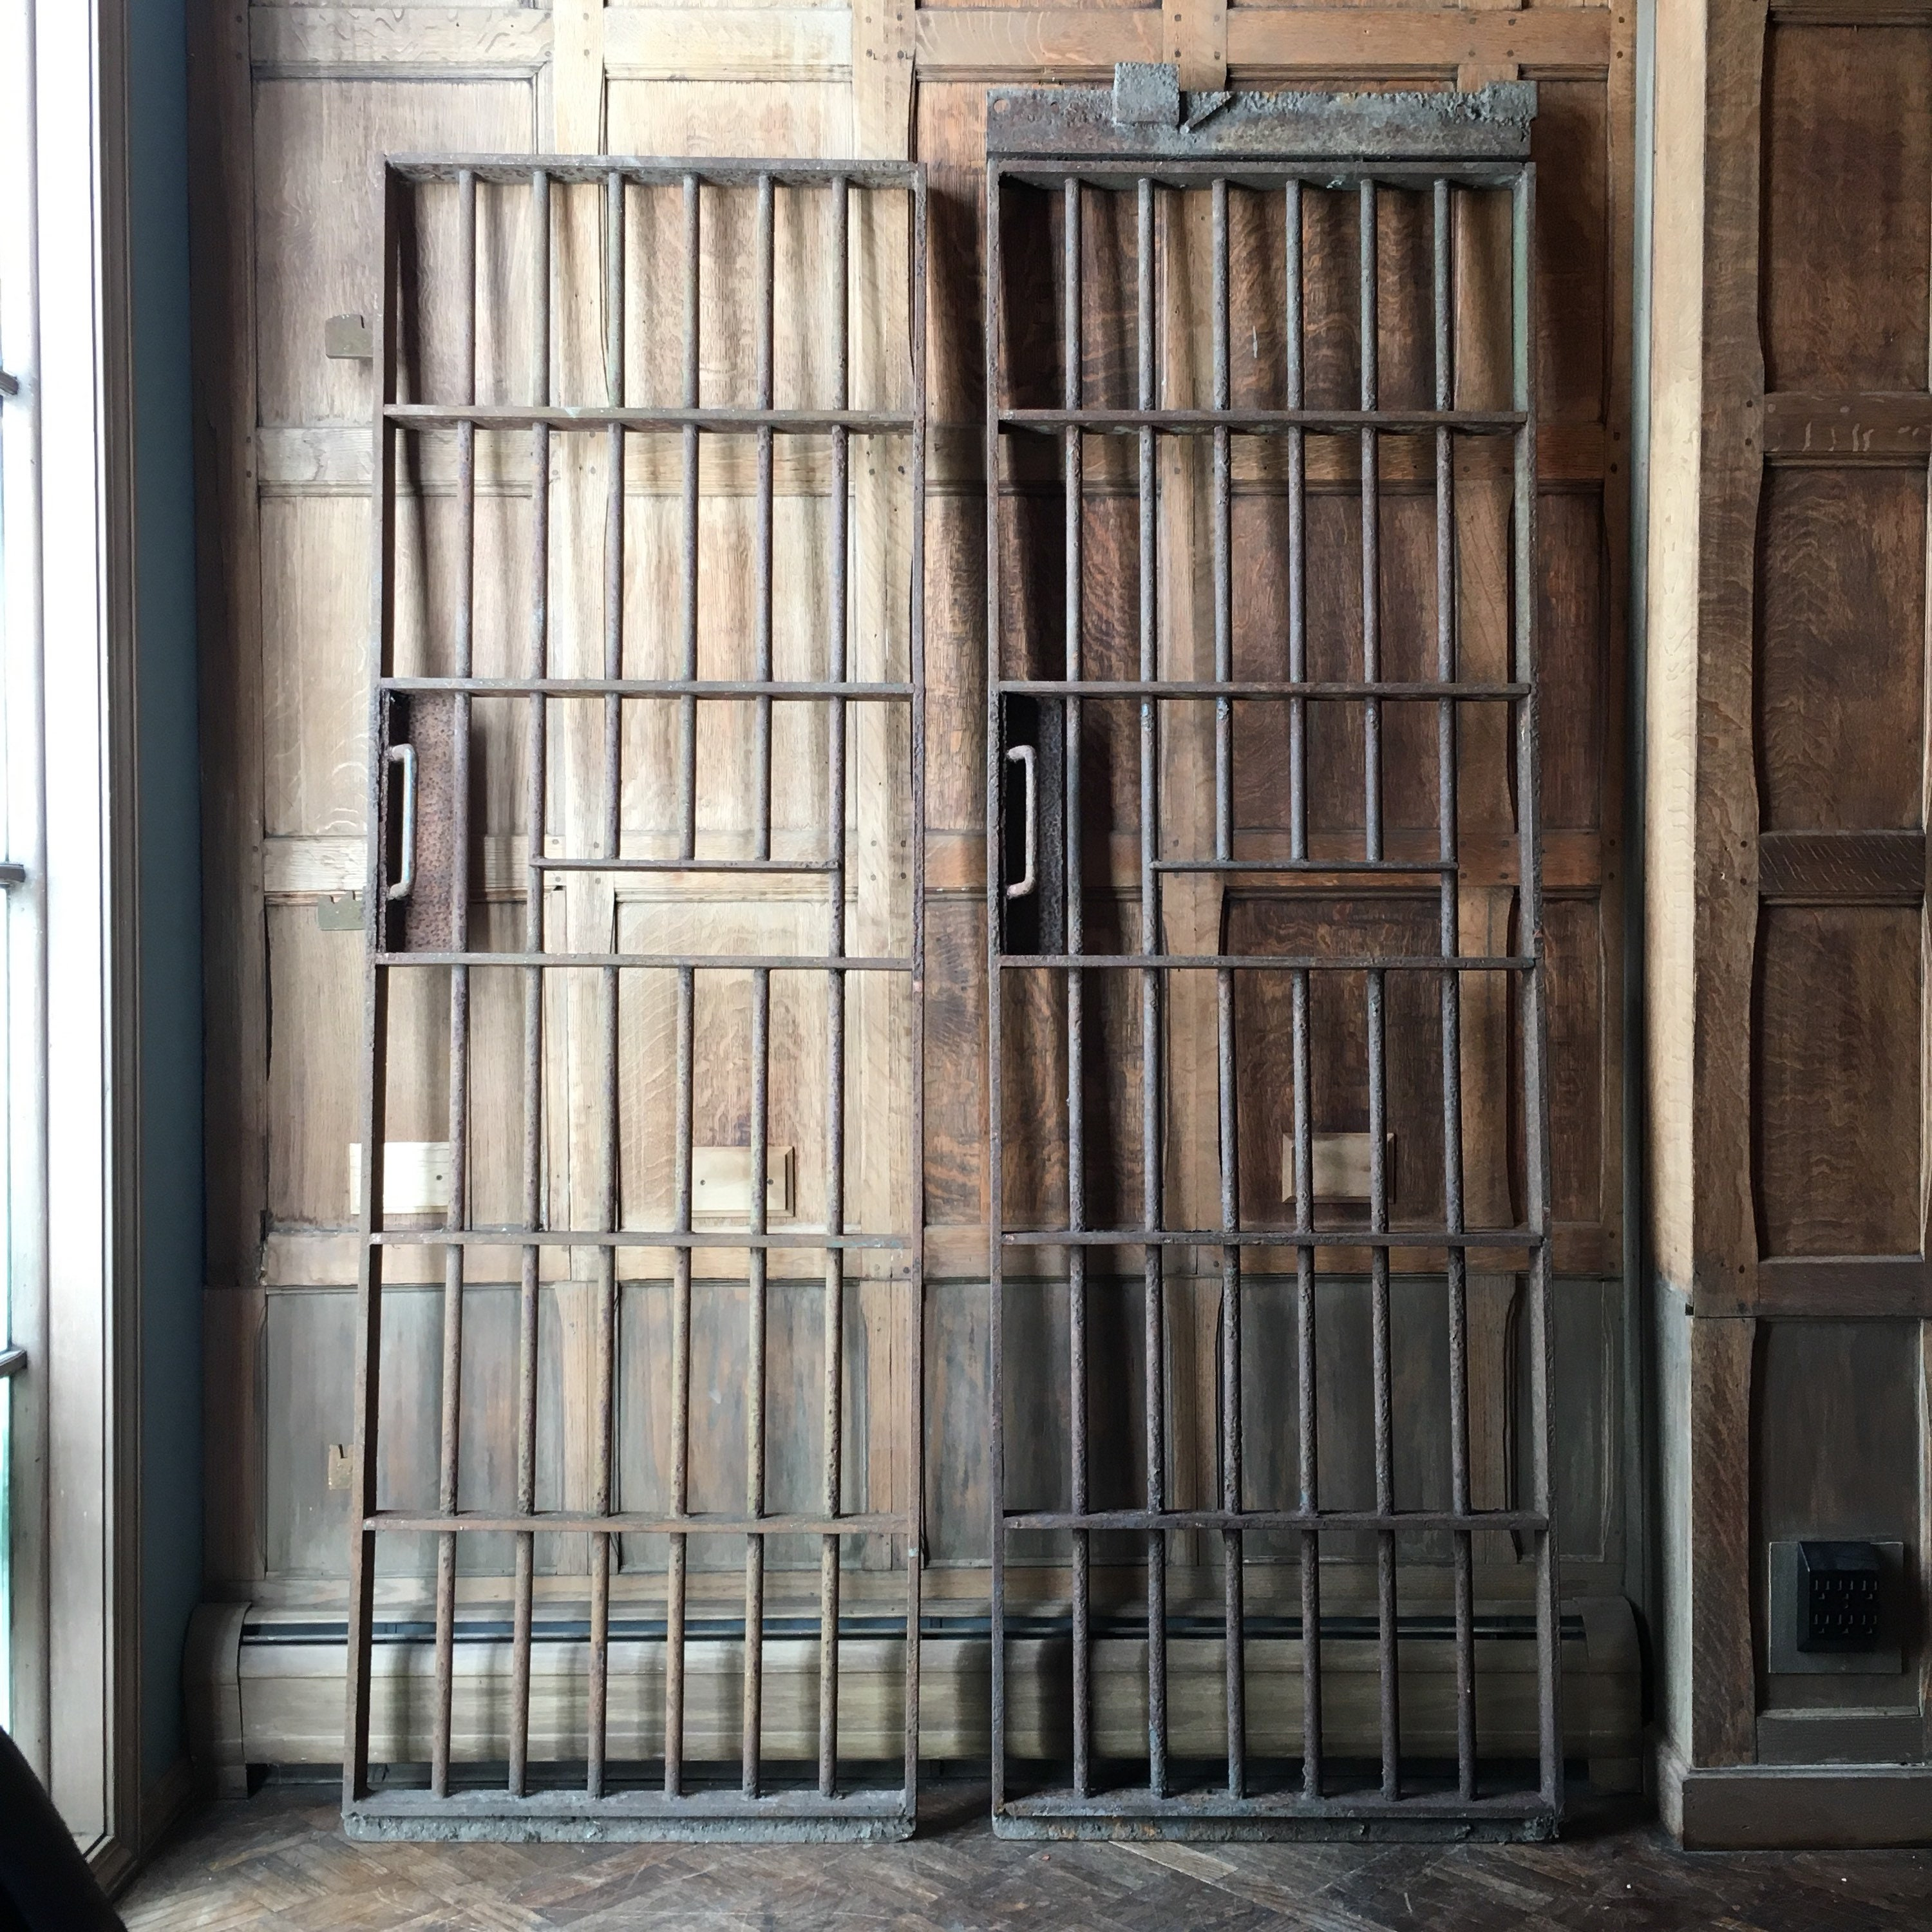 Antique Prison Cell Gate Iron Gates Industrial Wall